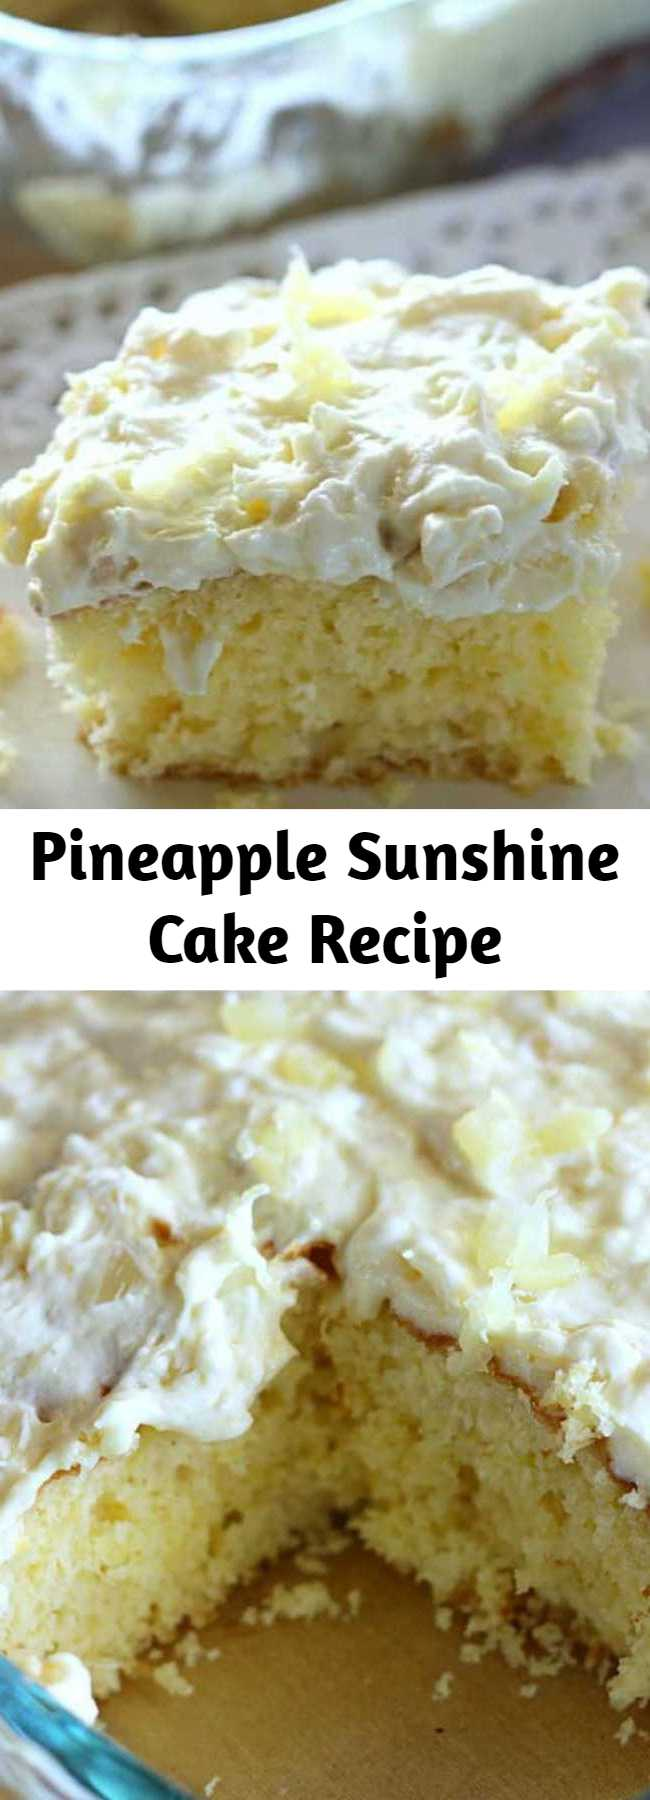 Pineapple Sunshine Cake Recipe - A light and fluffy pineapple-infused cake, topped with a sweet and creamy whipped cream frosting. This cake is always a crowd pleaser!